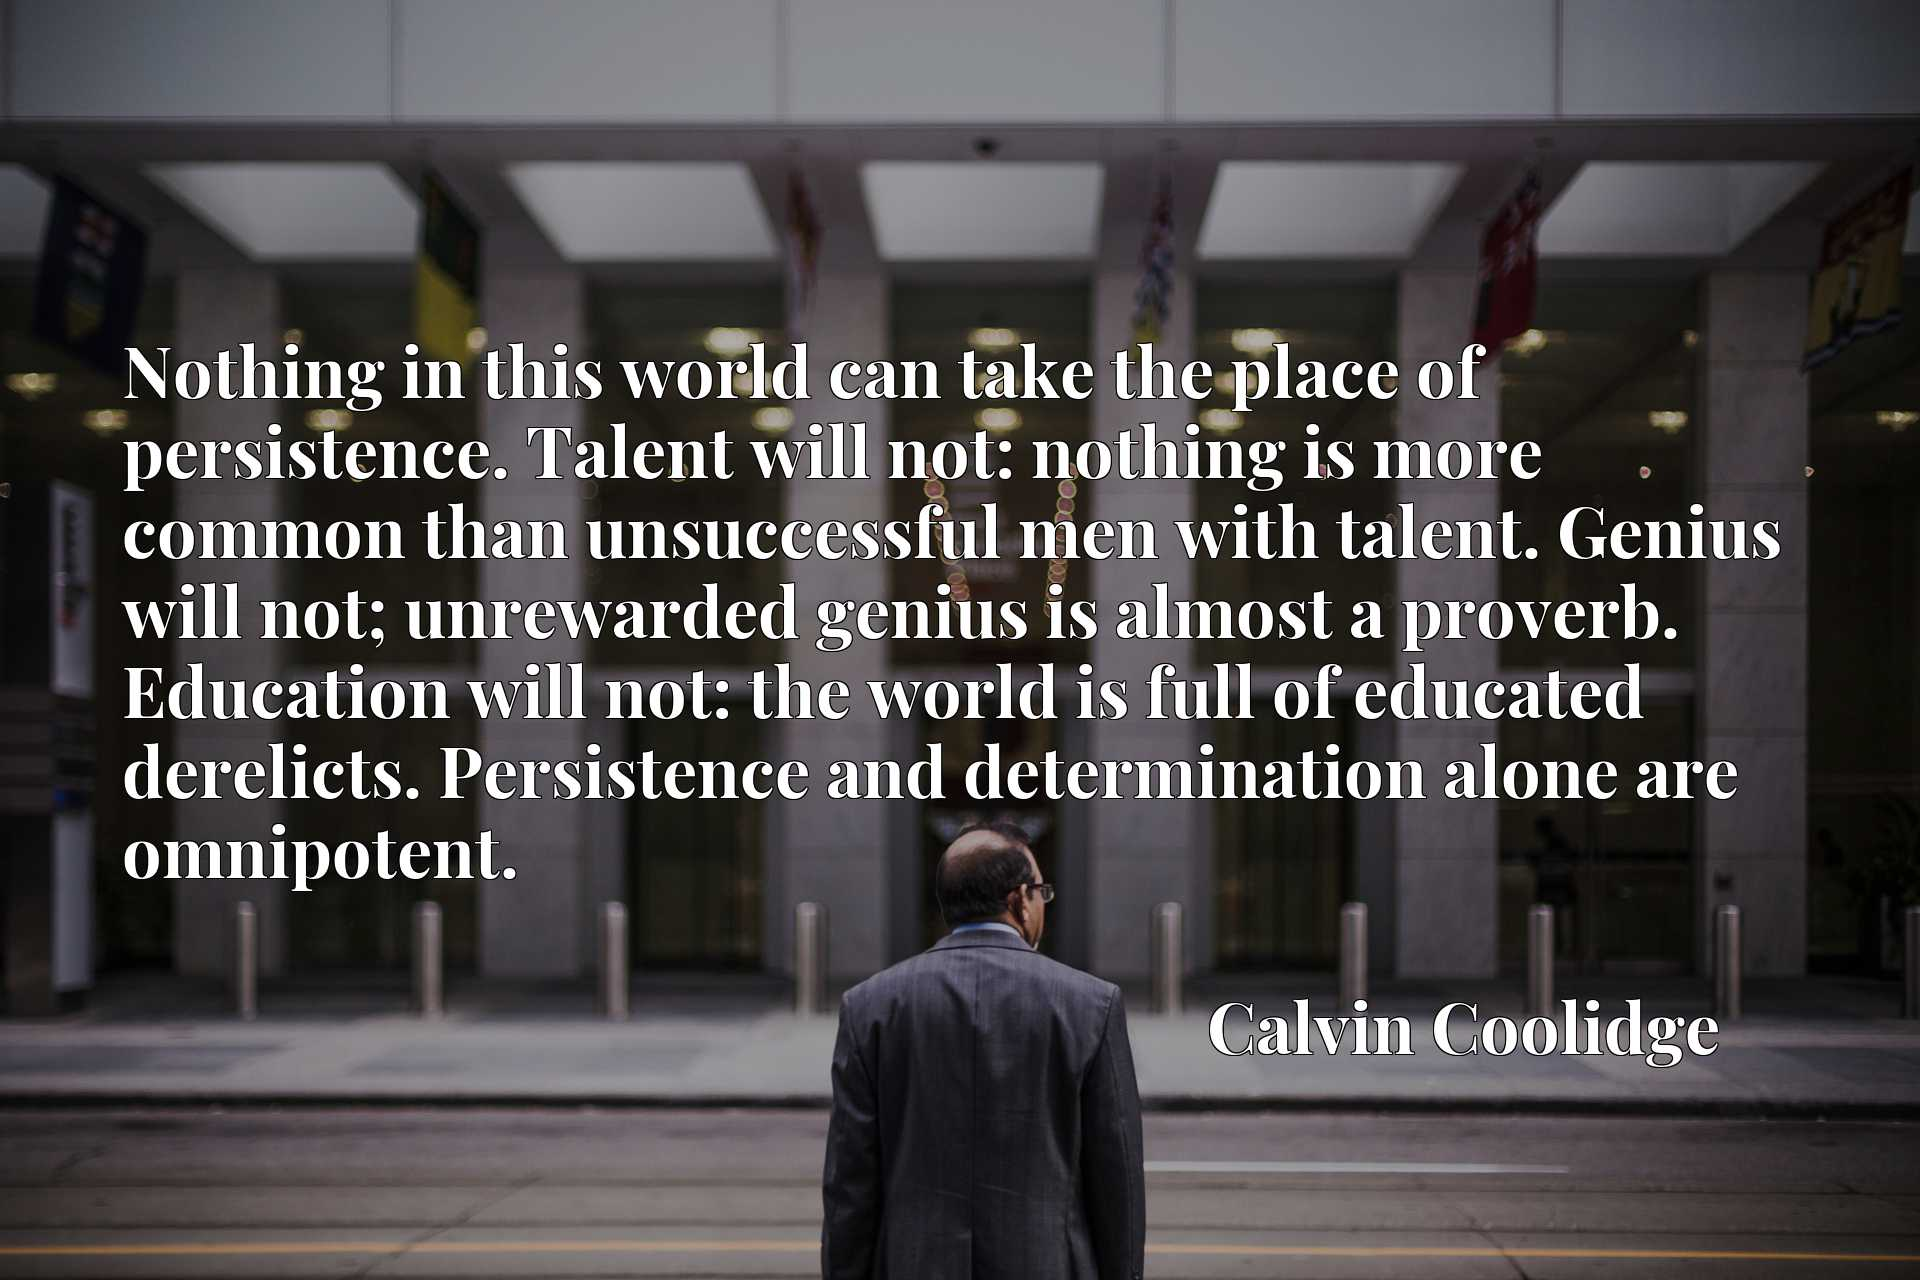 Nothing in this world can take the place of persistence. Talent will not: nothing is more common than unsuccessful men with talent. Genius will not; unrewarded genius is almost a proverb. Education will not: the world is full of educated derelicts. Persistence and determination alone are omnipotent.